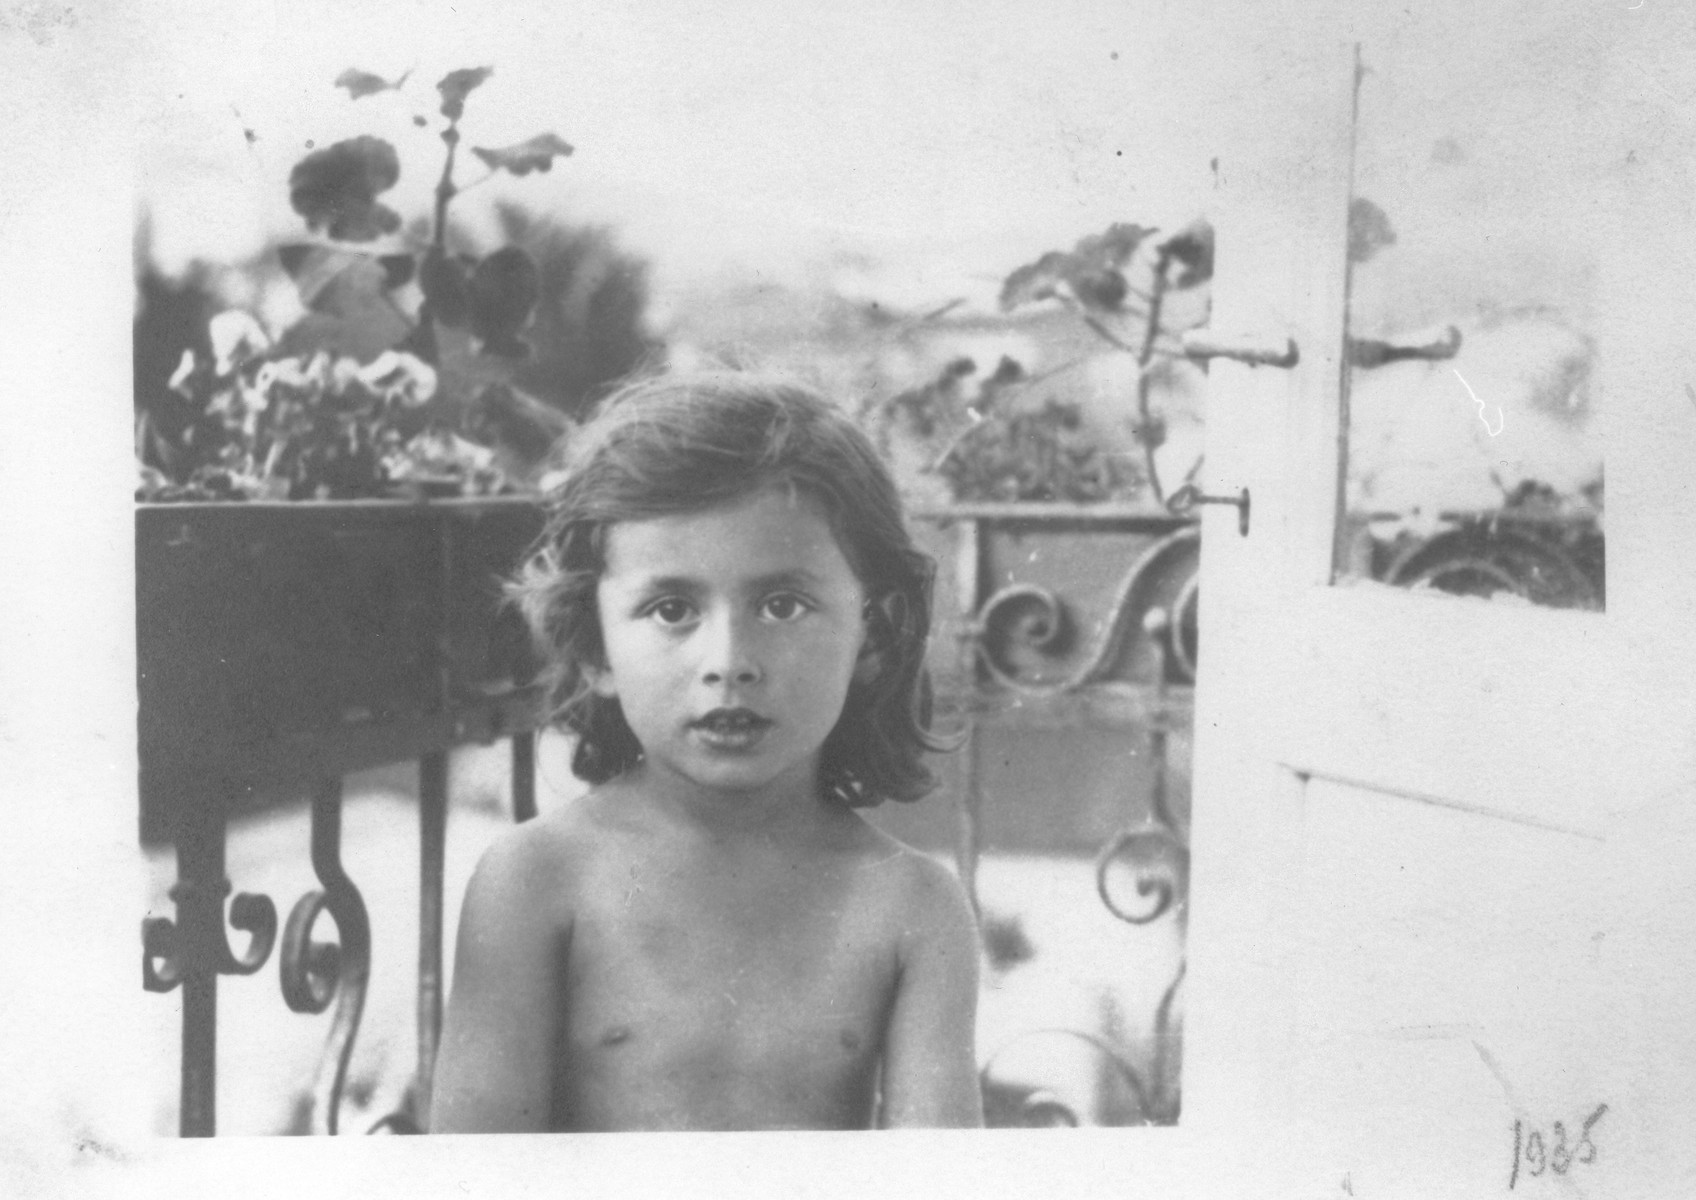 Portrait of a young Jewish girl, Lida Kleinman, sitting on the balcony of her home in Lacko, Poland.